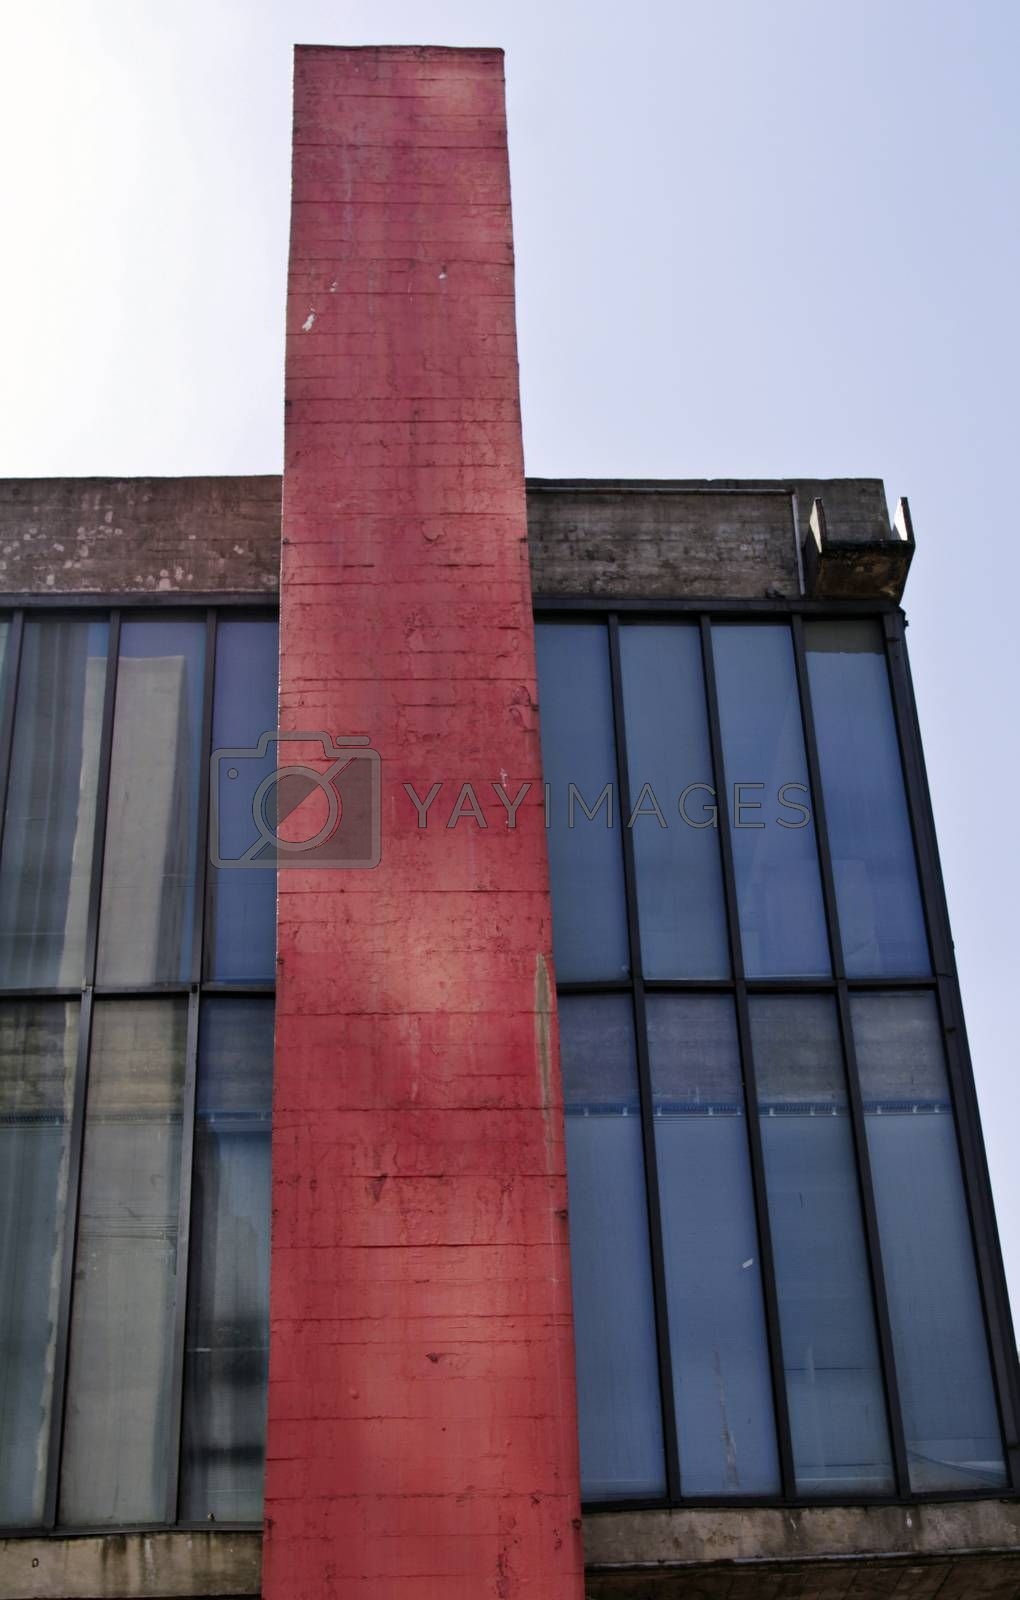 Modern building with glass facade in blue and red